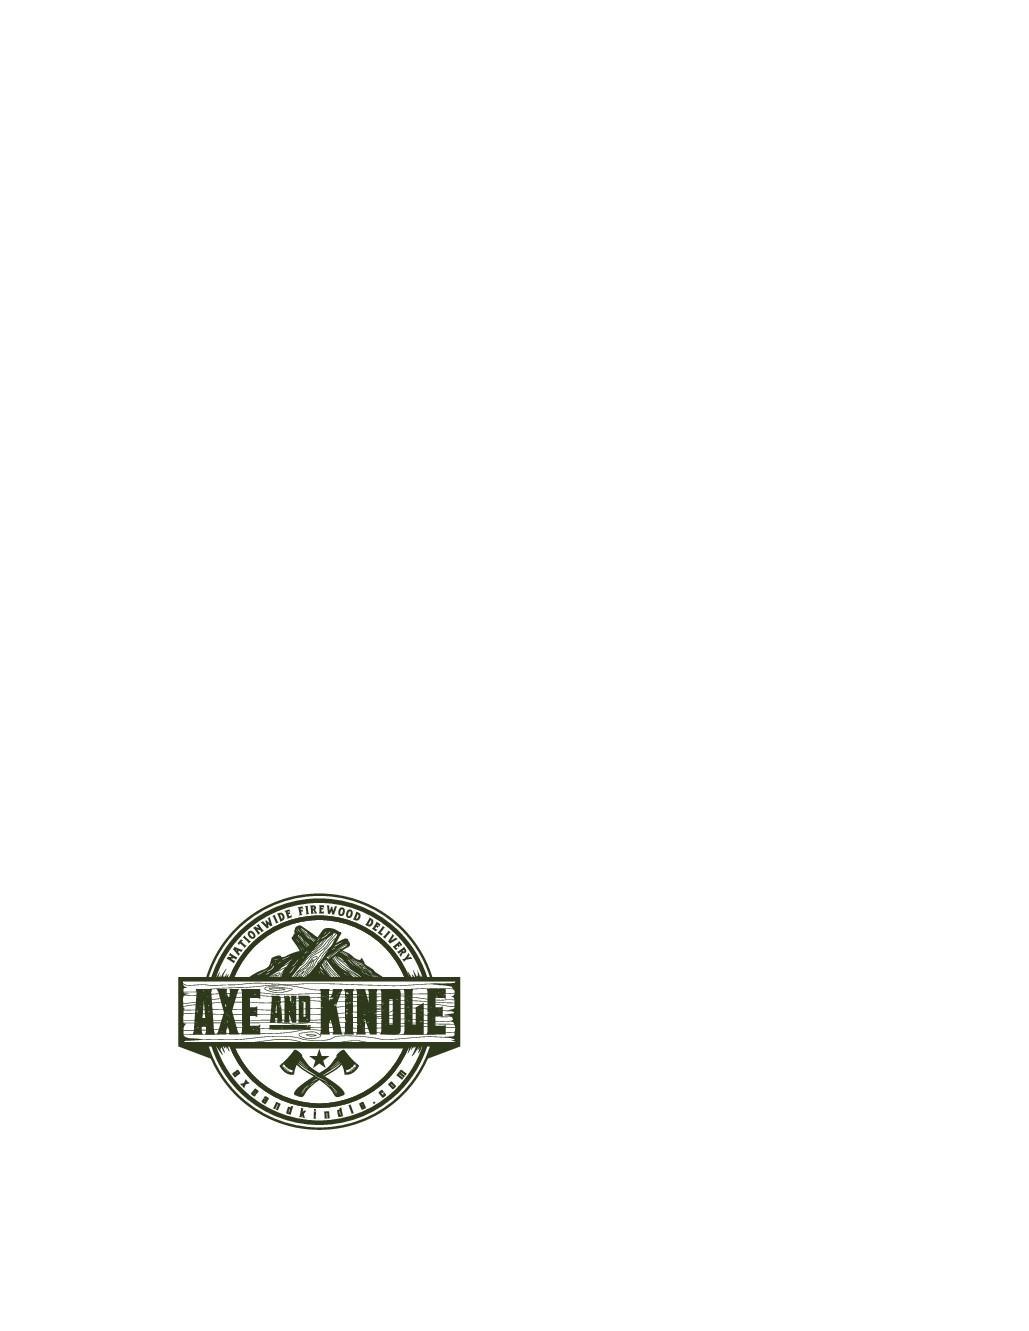 Help me create a logo for our nationwide firewood delivery company